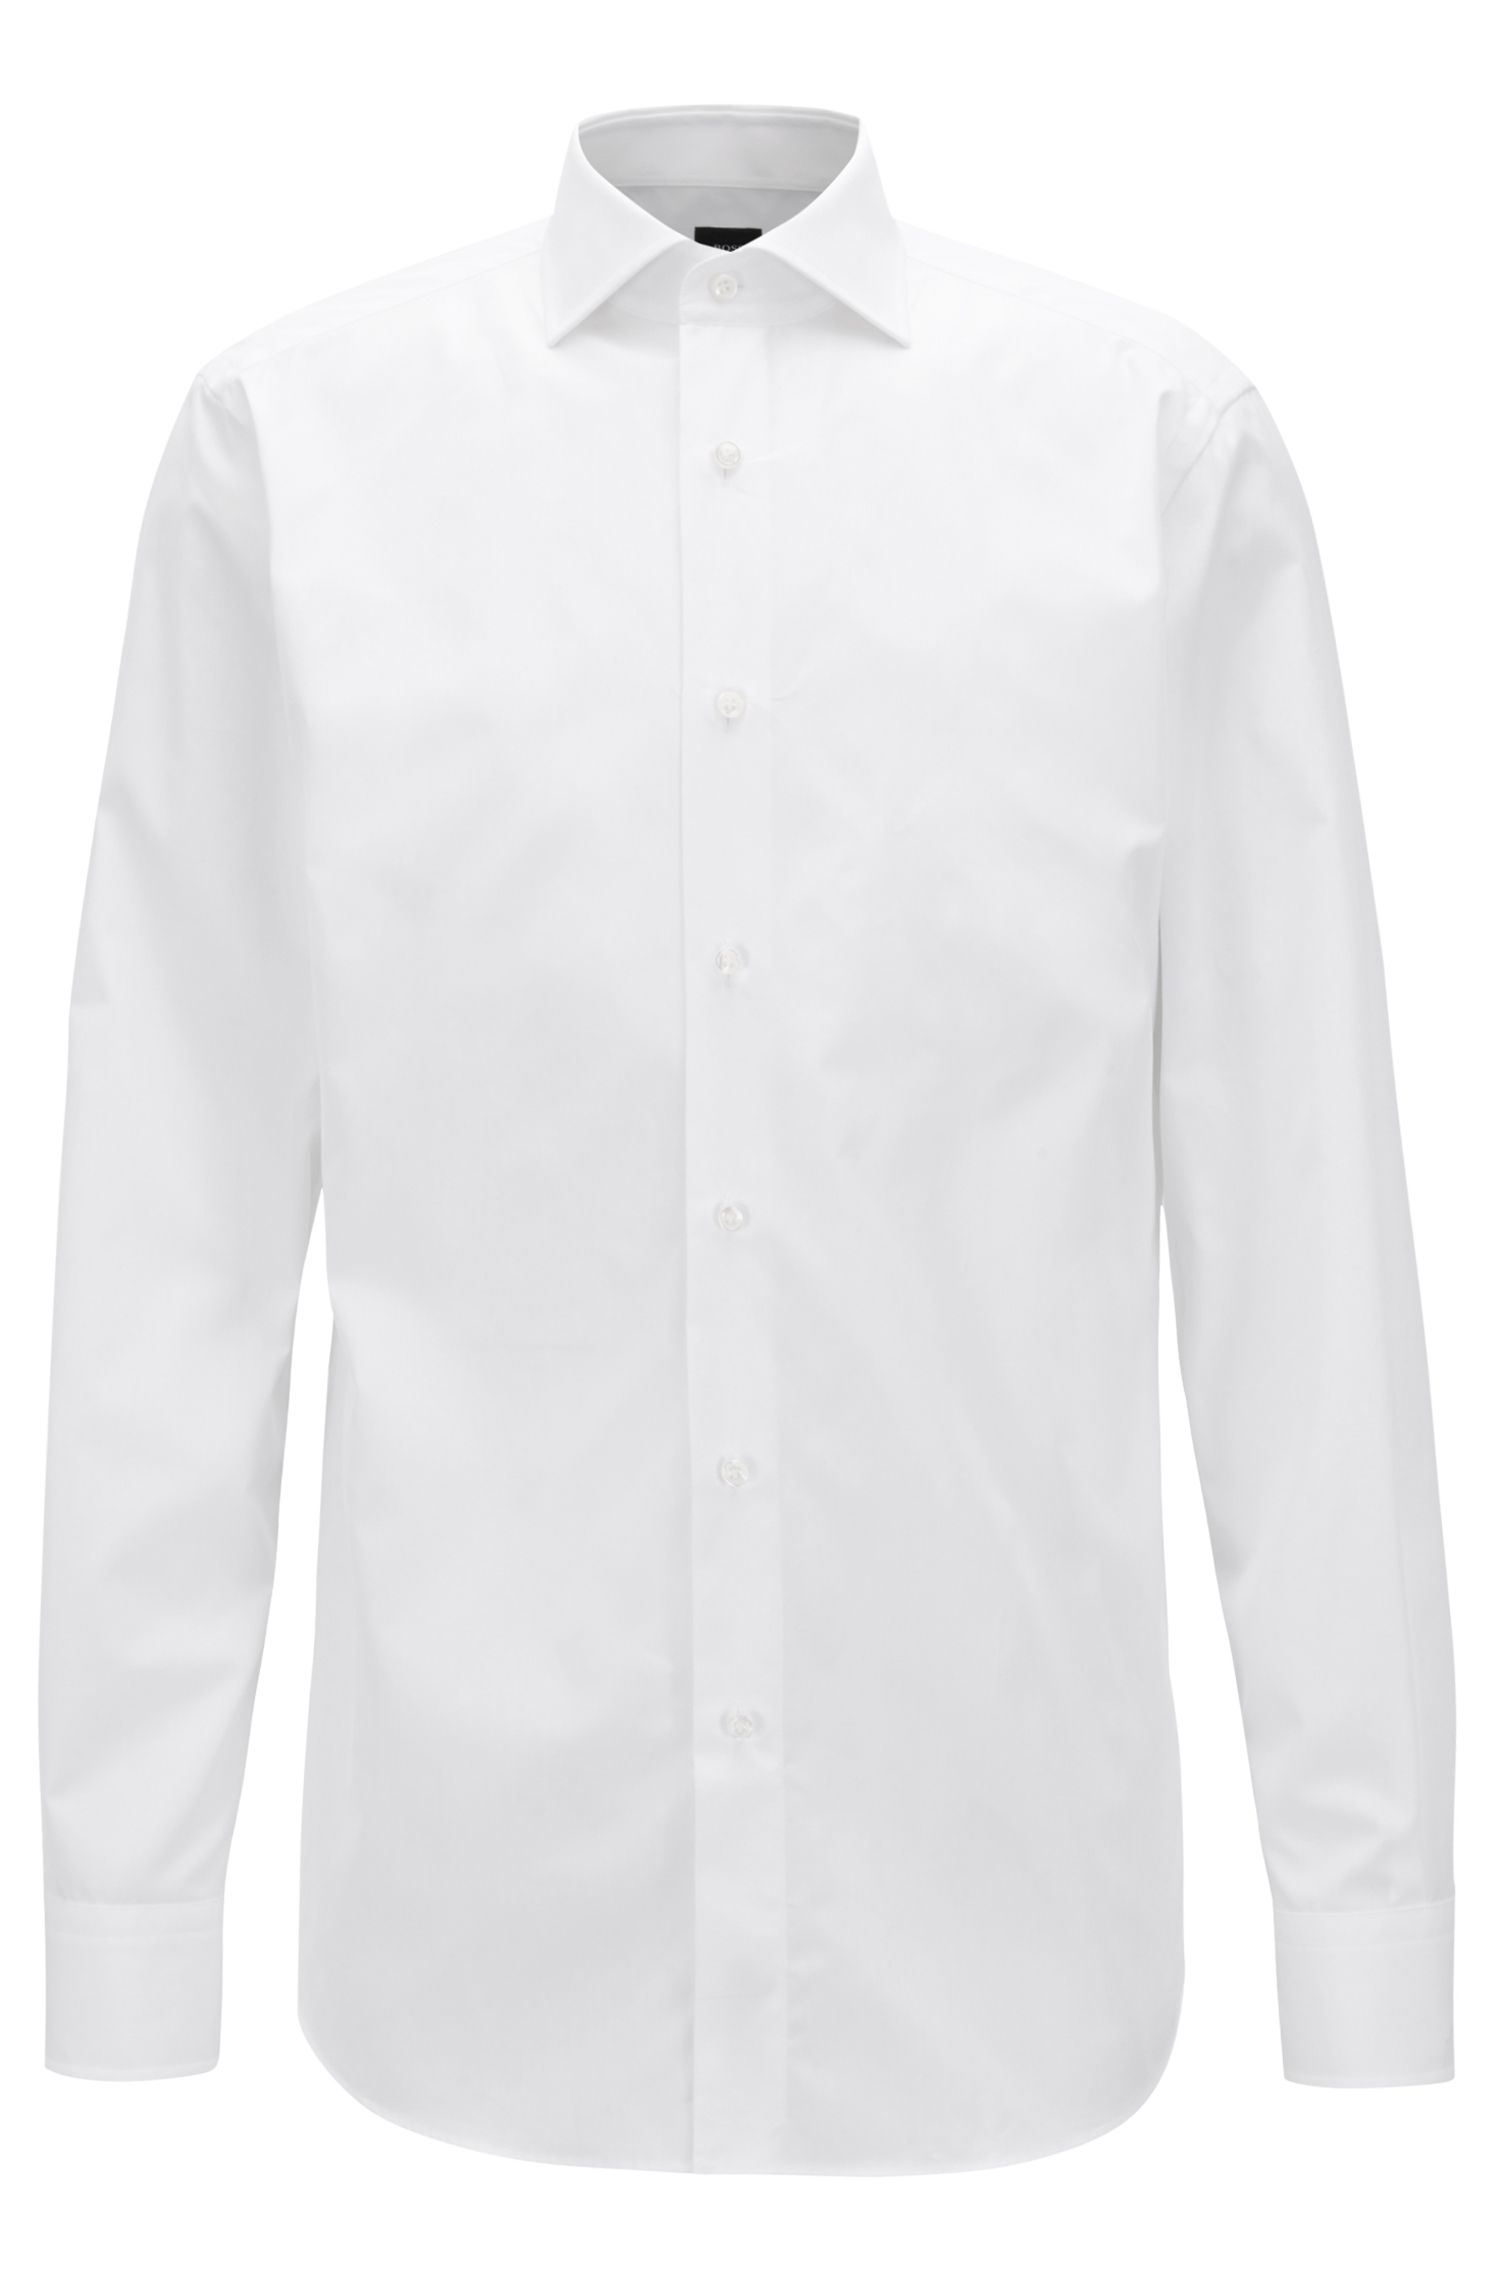 Tailored shirt in two-ply Italian cotton poplin